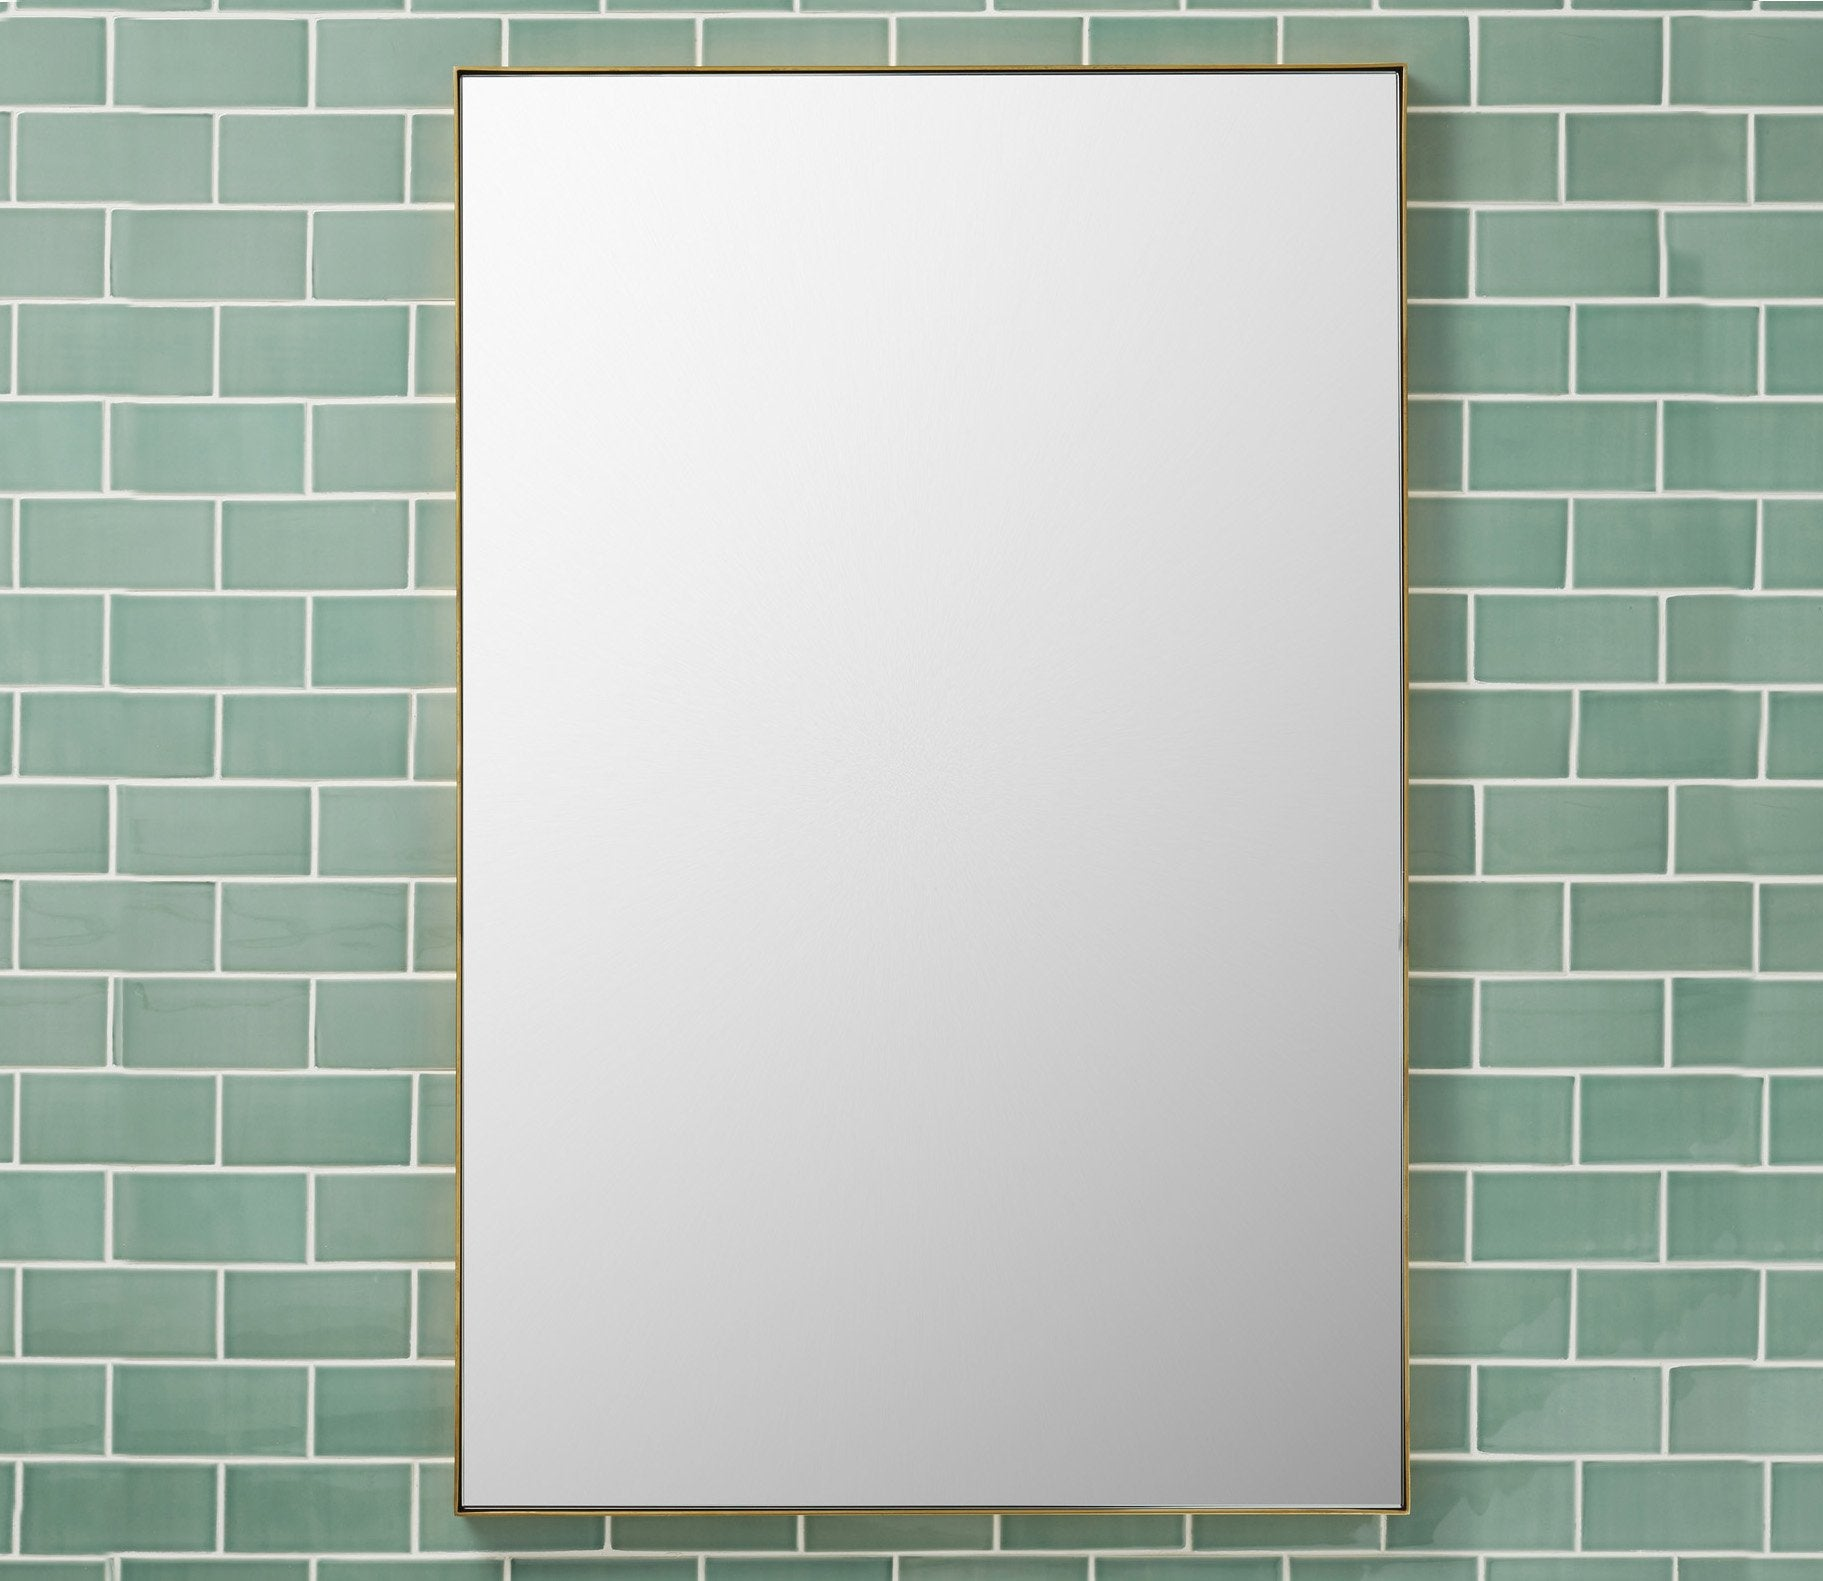 Mercer Wall Mirror Product Image 2